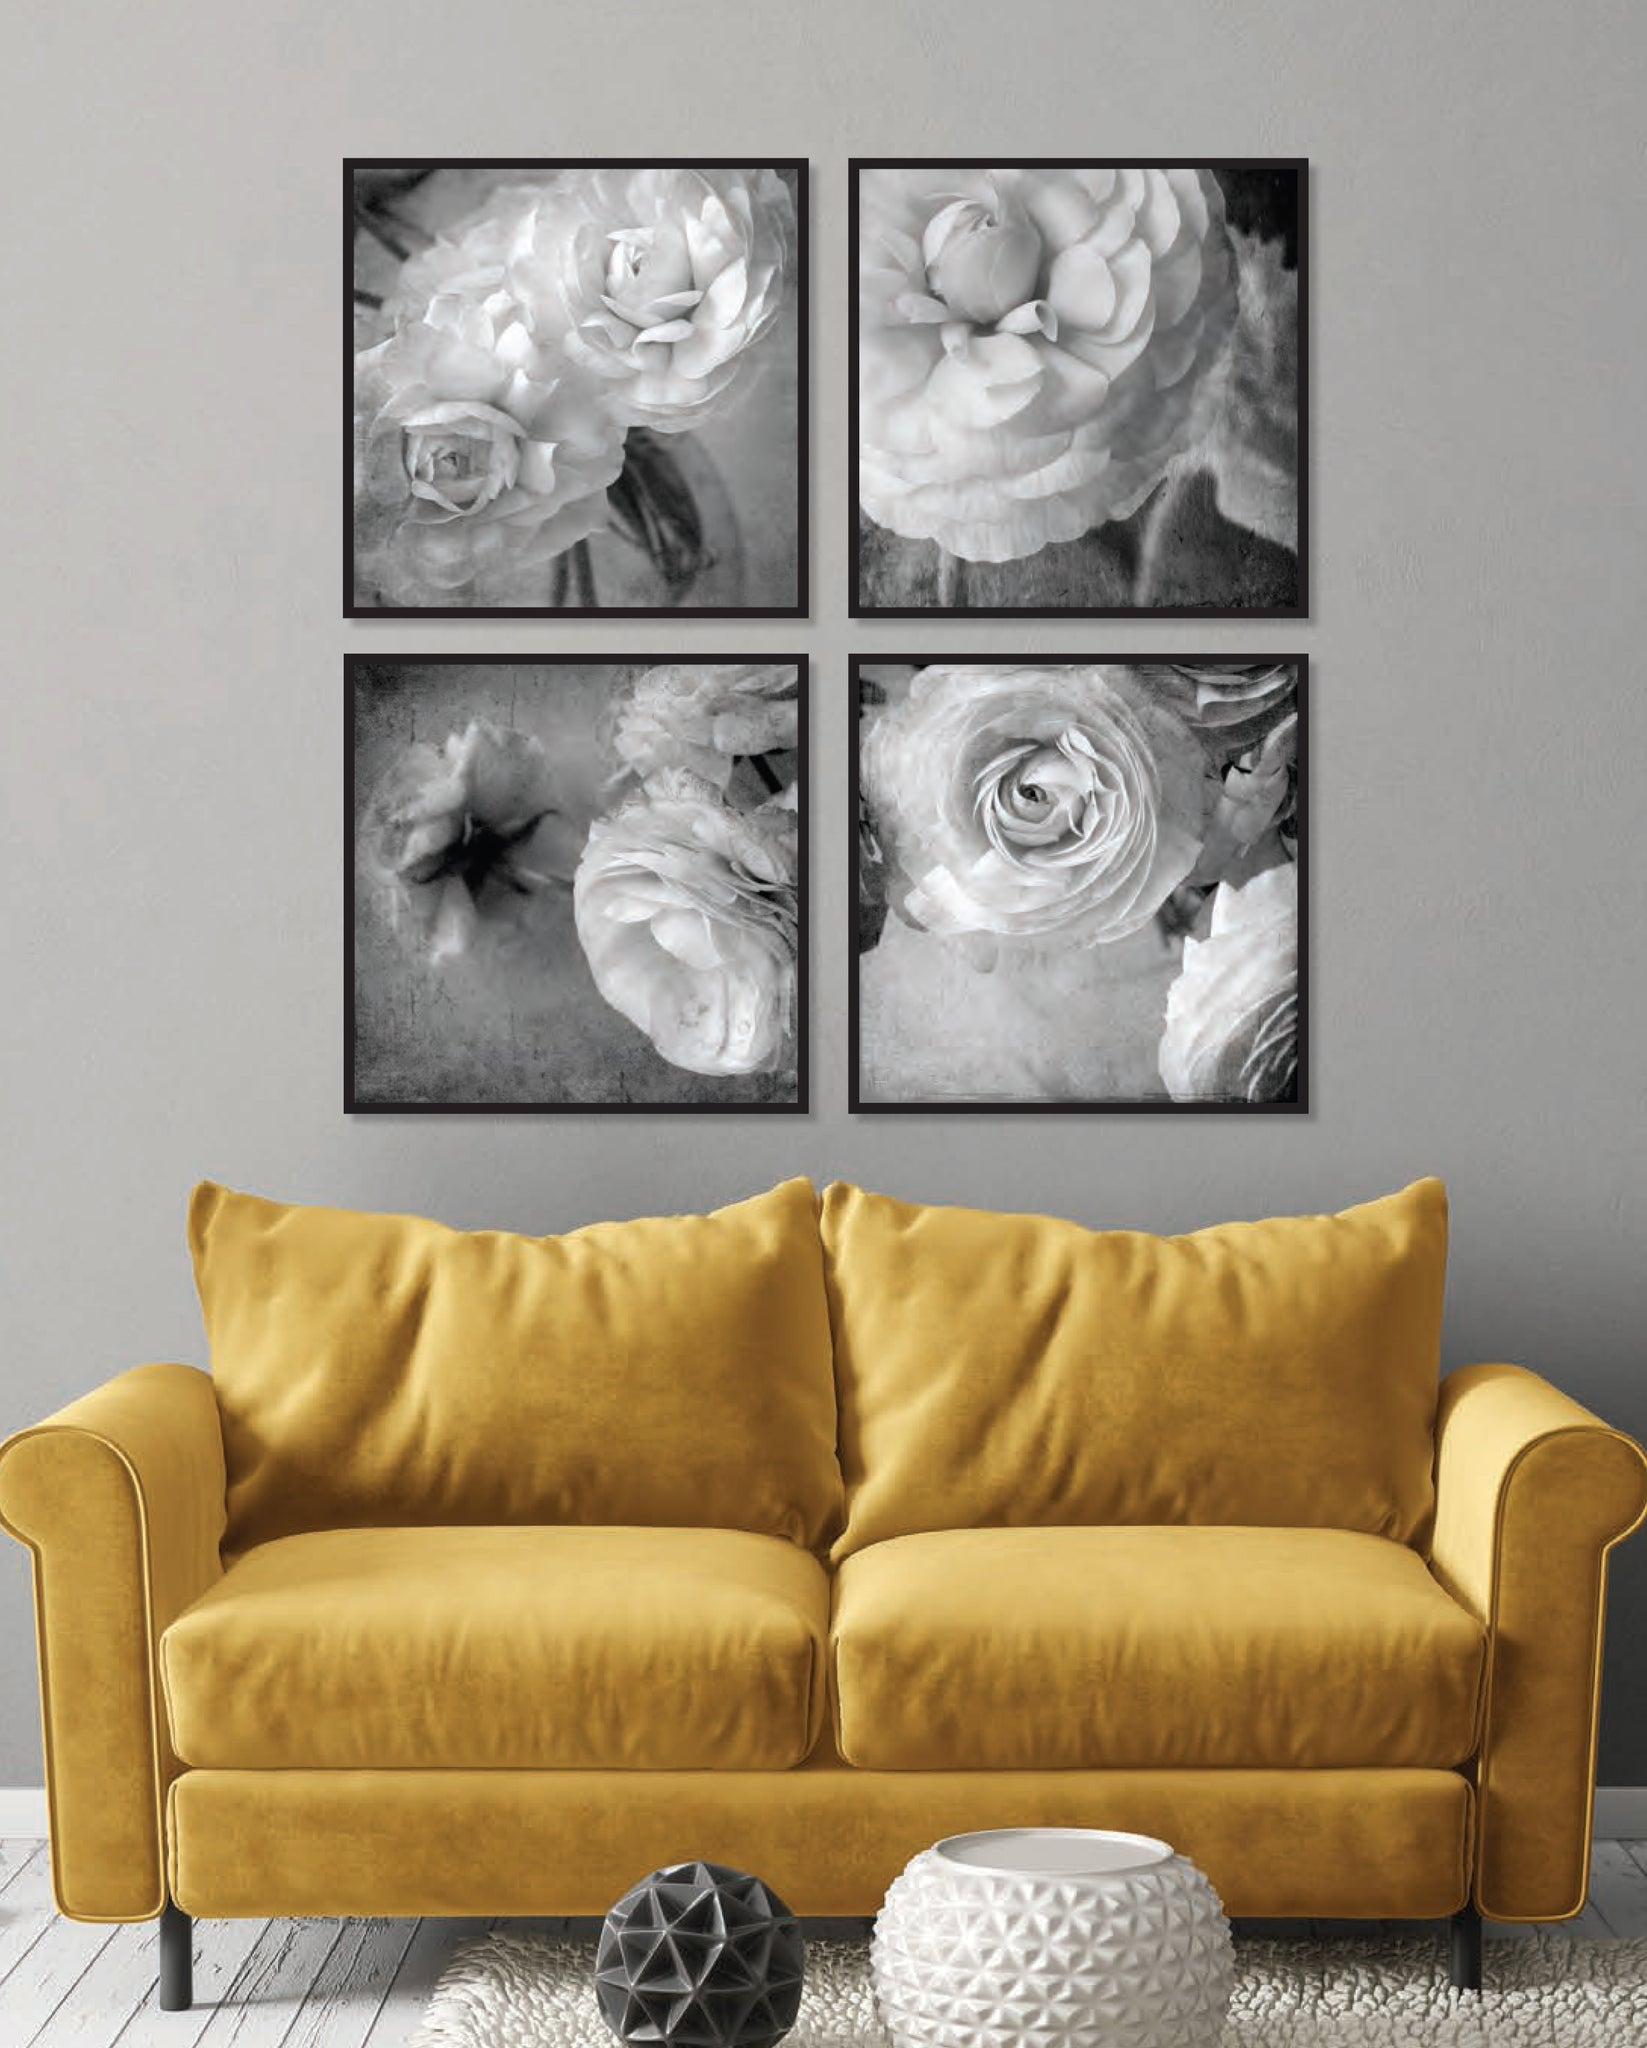 Gallery Wall of Black & White Florals